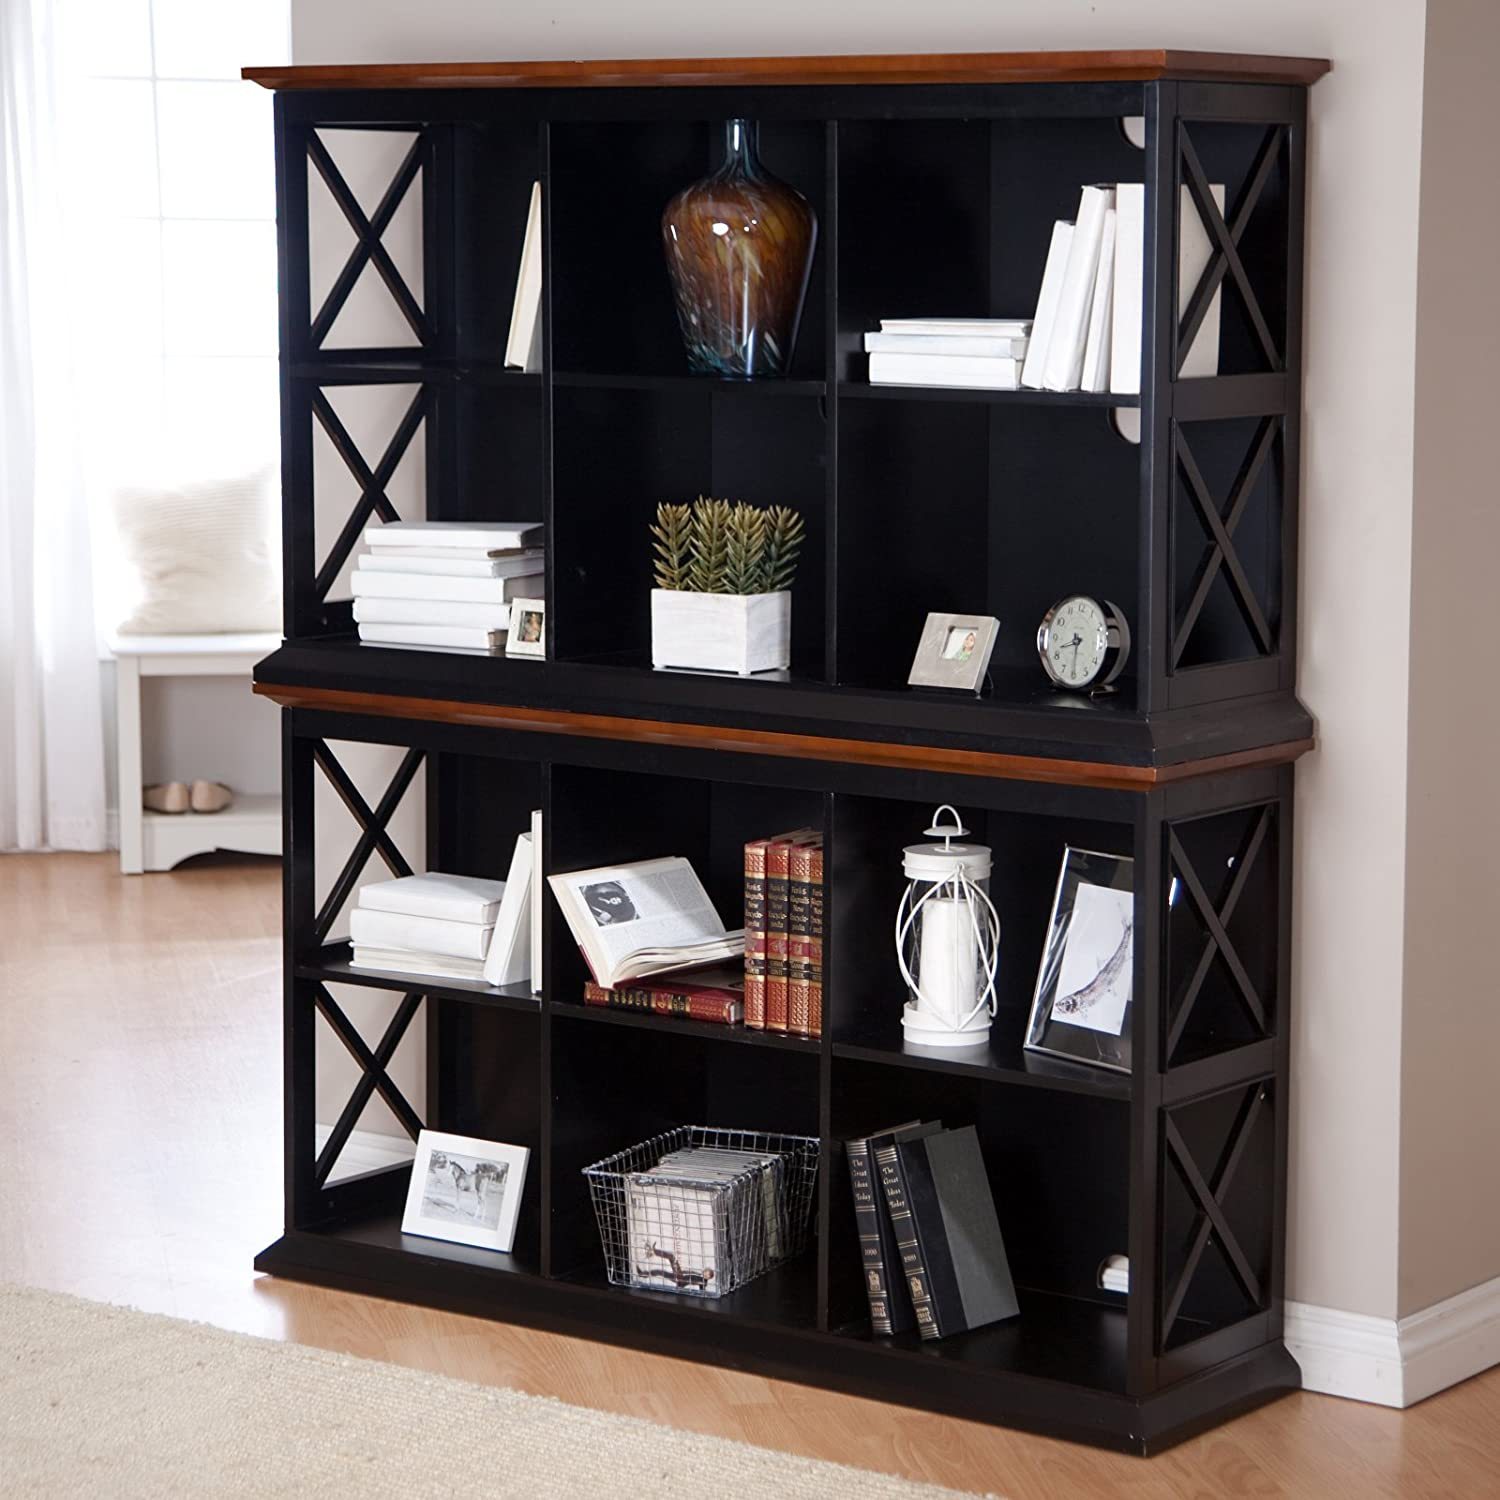 order console table eurway shelf to modern call shelving display ramsey low book bookshelf